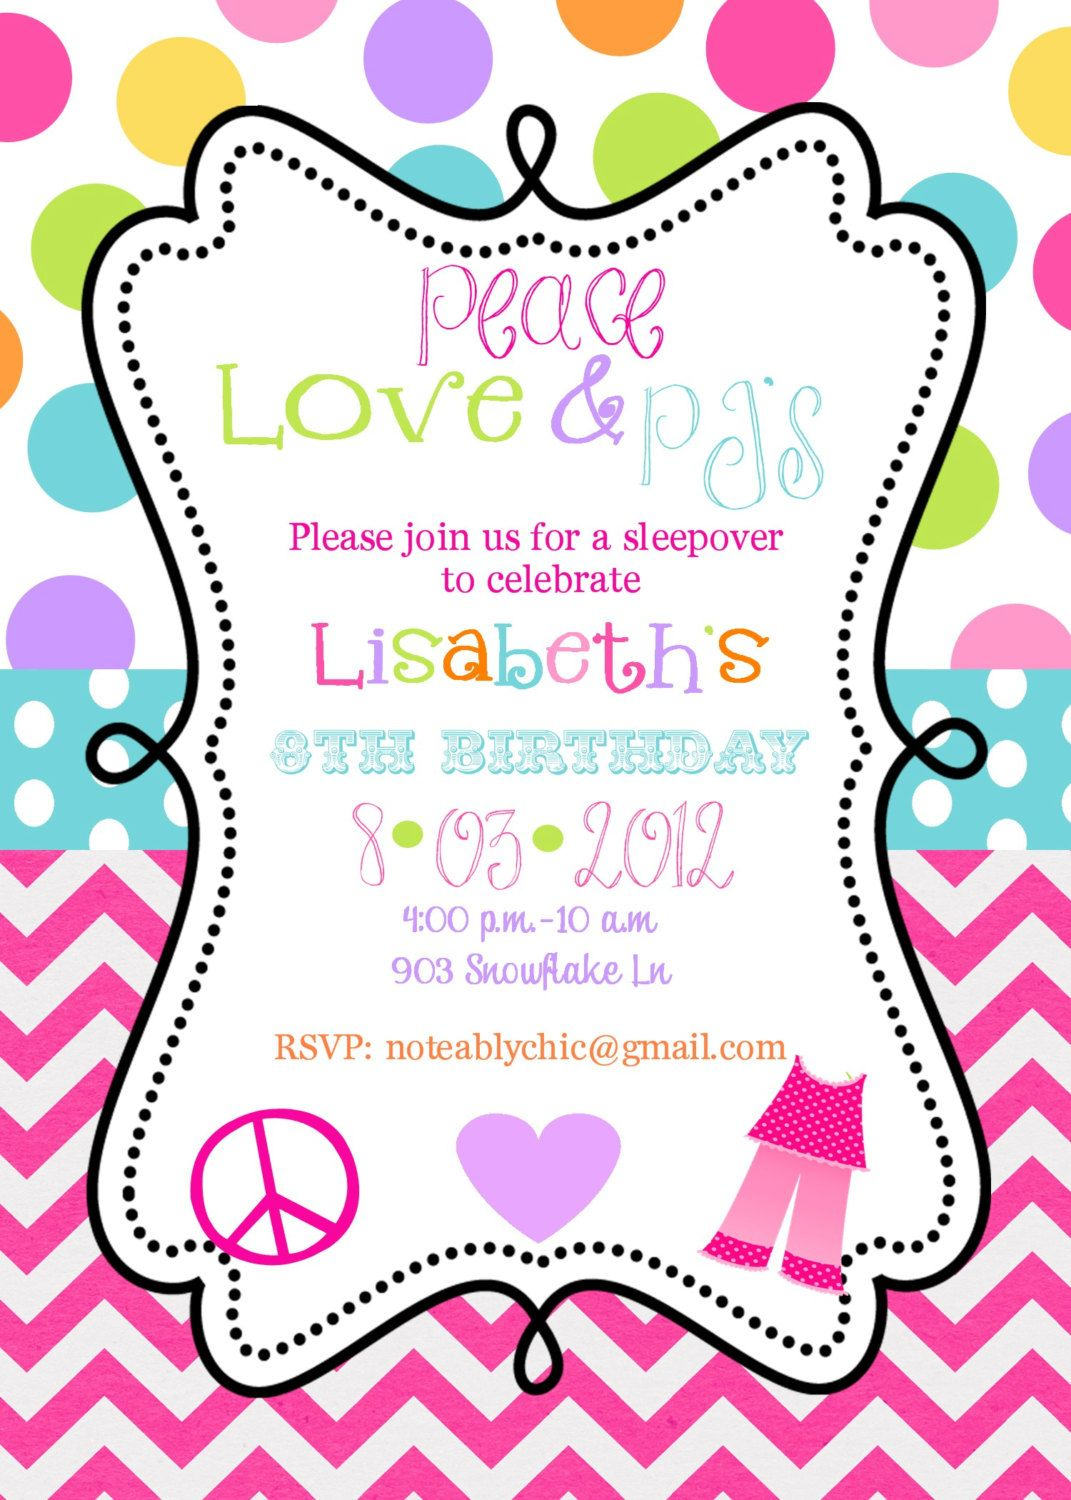 Free Birthday Invitations Templates | My Birthday | Pinterest ...